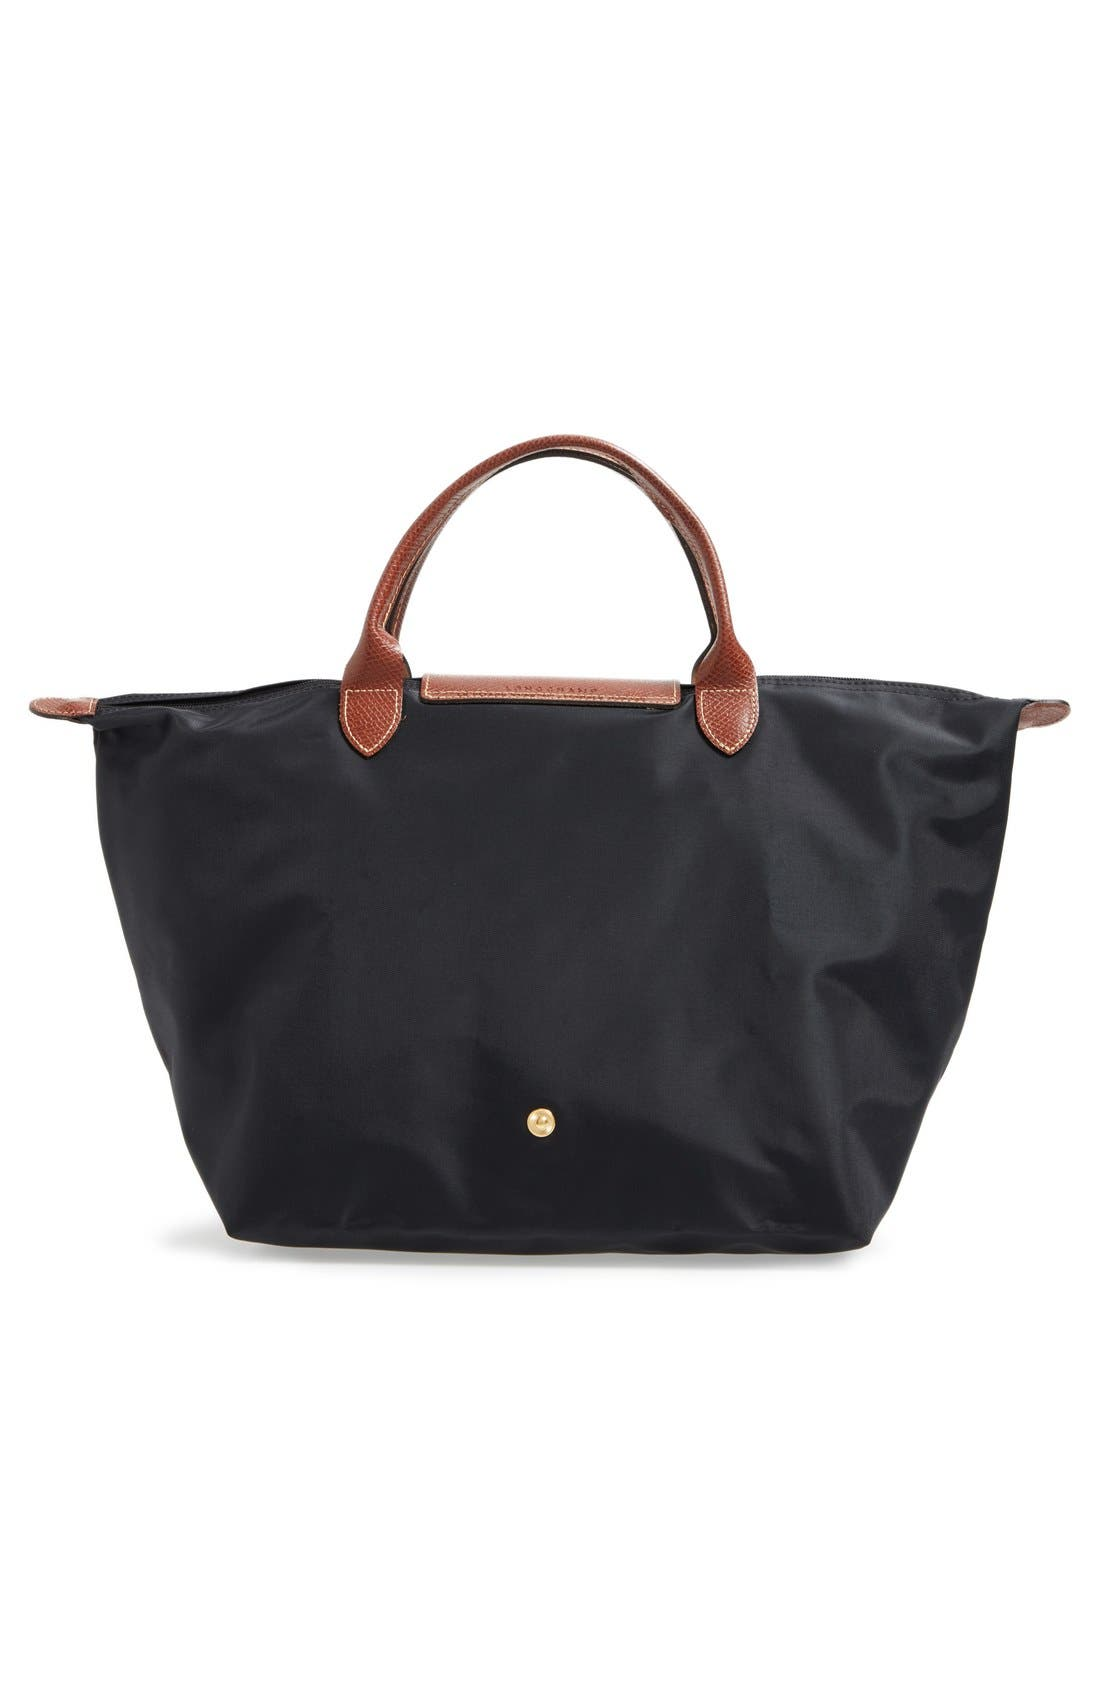 Alternate Image 3  - Longchamp 'Medium Le Pliage' Tote